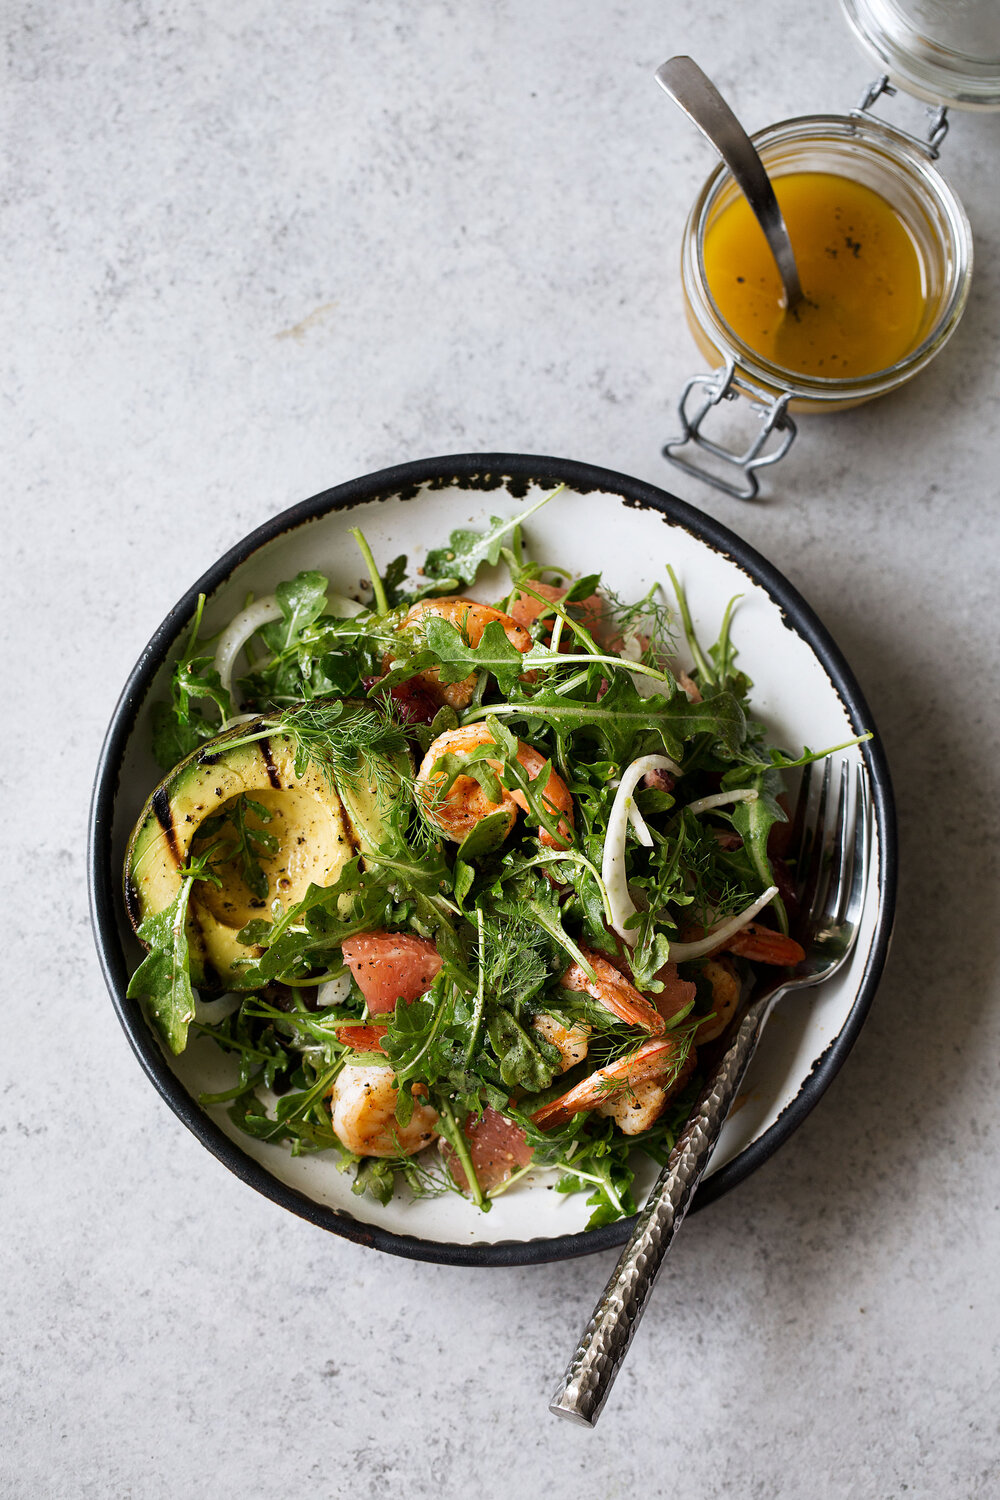 Grilled Avocado & Shrimp Salad with Winter Citrus Salad